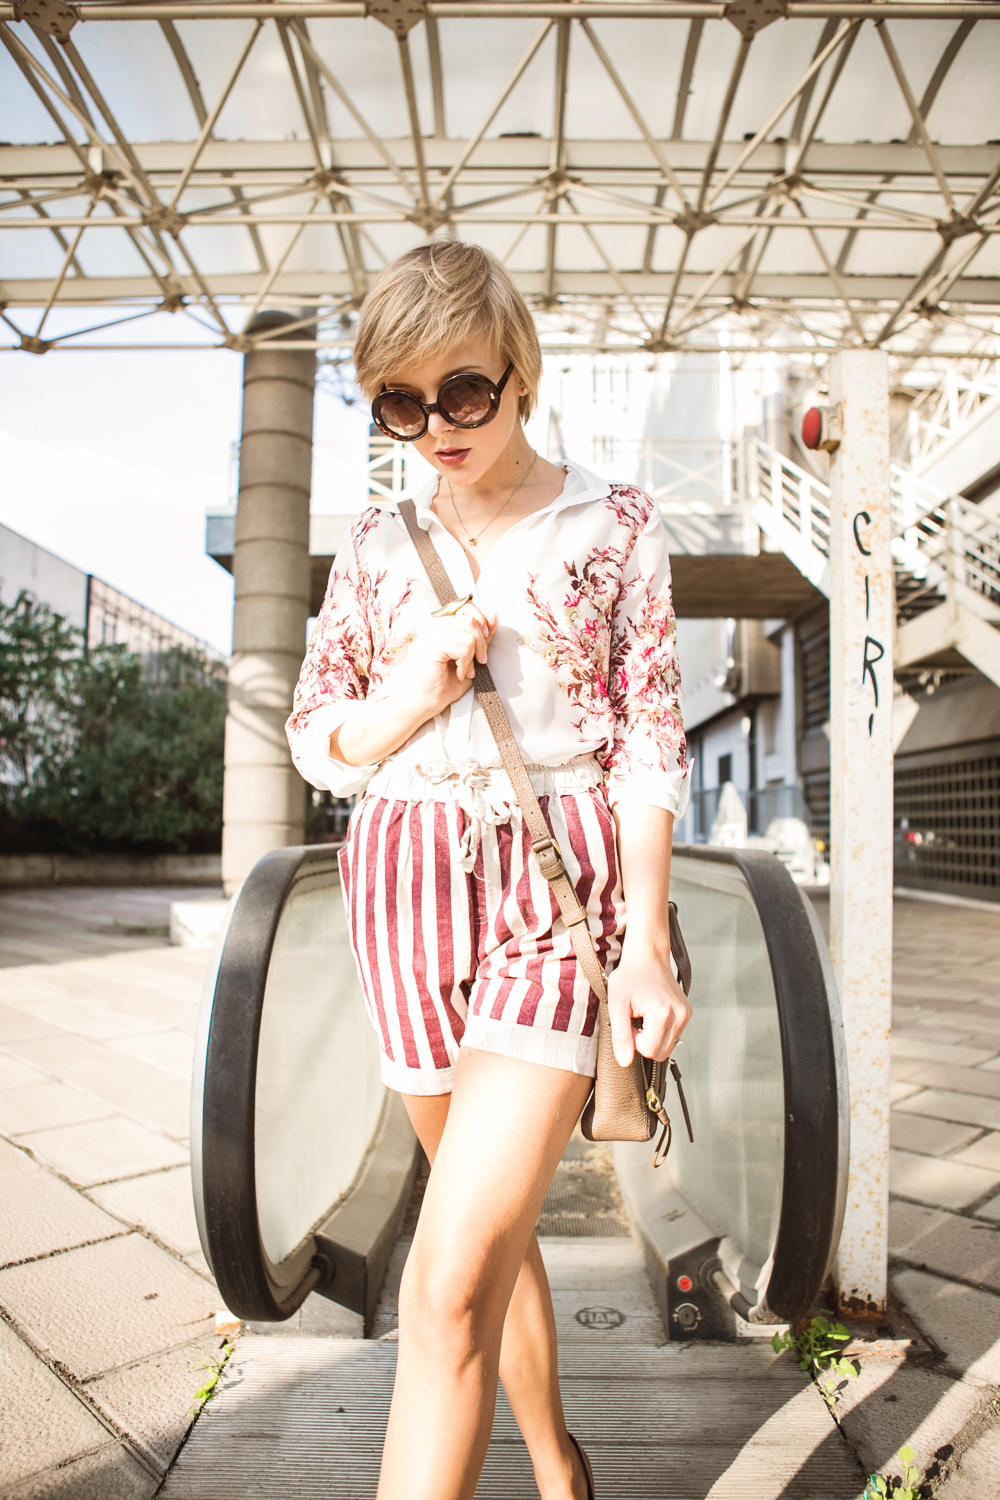 darya kamalova thecablook com fashion blog street style pixie hair cut blonde vj style striped shorts phillip lim 3.1 mini pashli bag taupe floral shirt boutique 9 heels giant vintage sunglasses gogo philip star necklace ootd outfit-11 копия